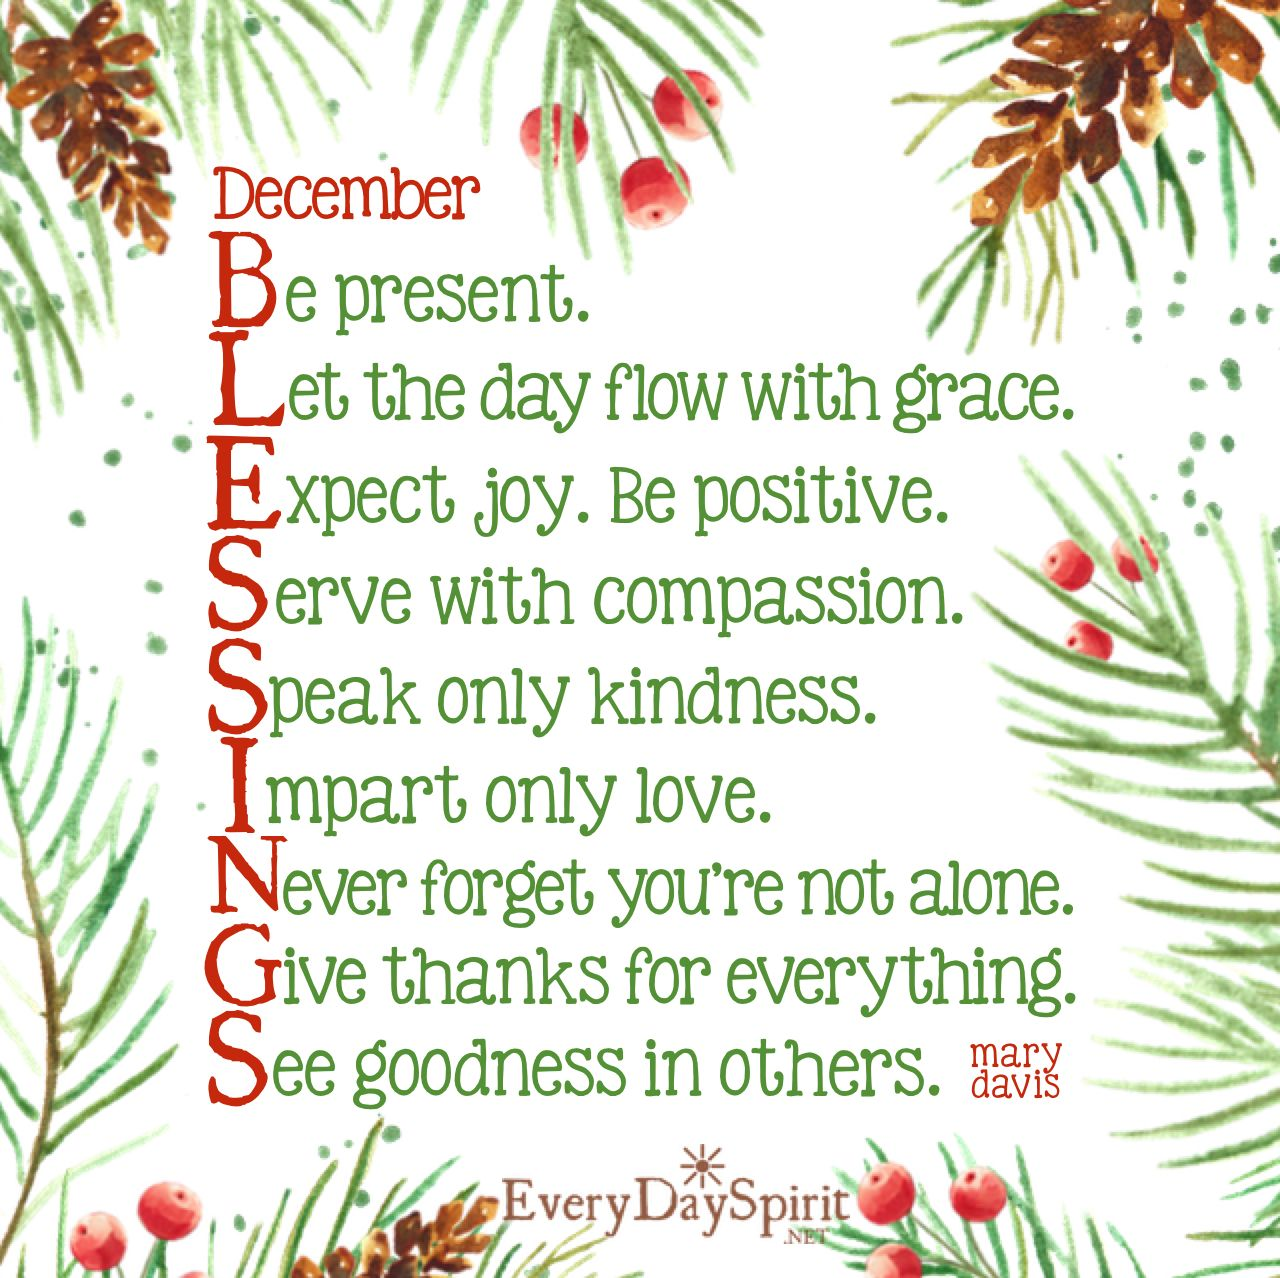 Happy Holidays Inspirational: December Blessings With Great Love! Visit Www